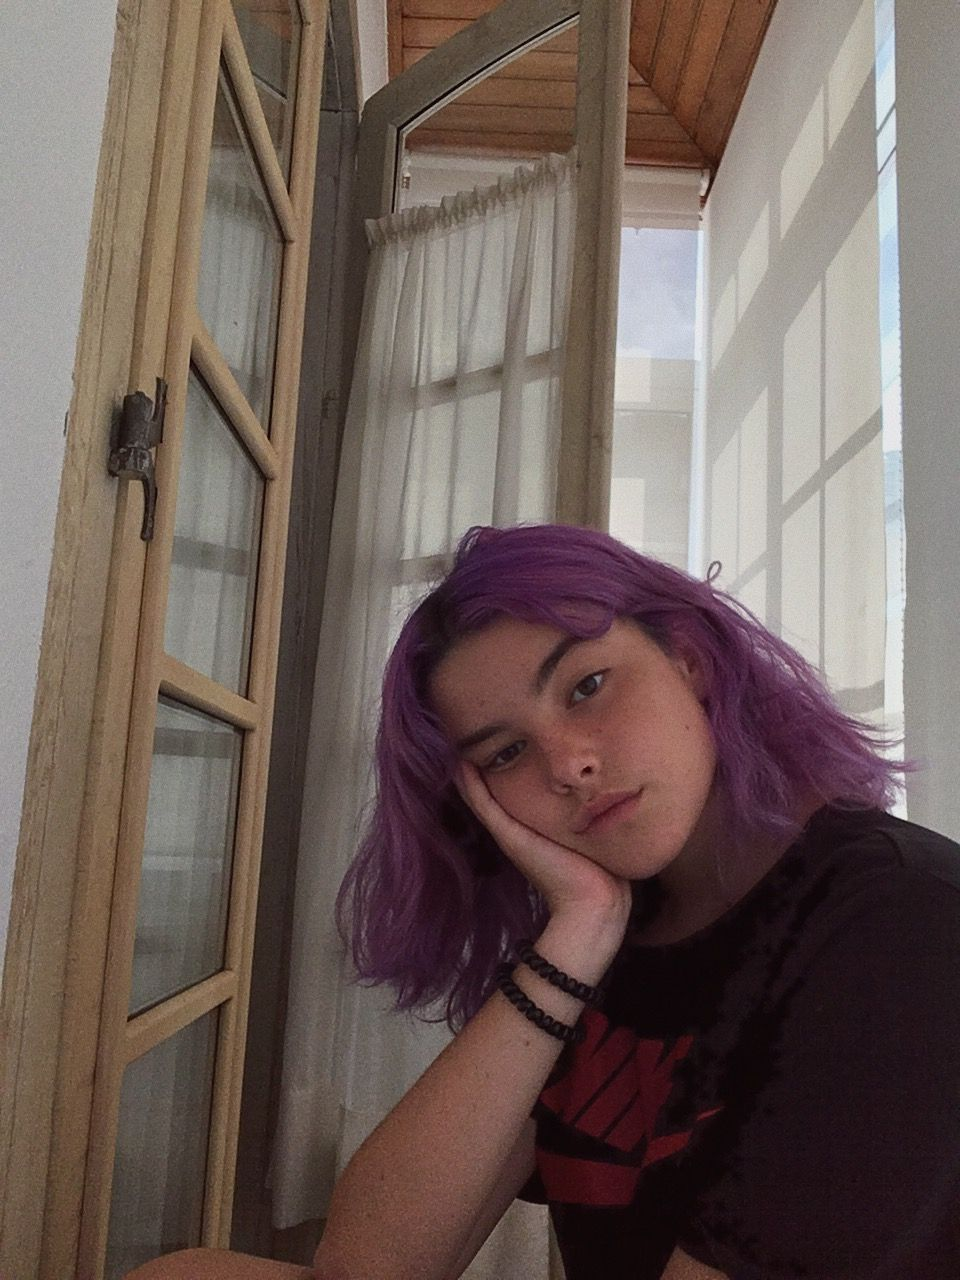 Pin By Ava On Dyed Hair Oops Hair Inspo Color Hair Styles Aesthetic Hair